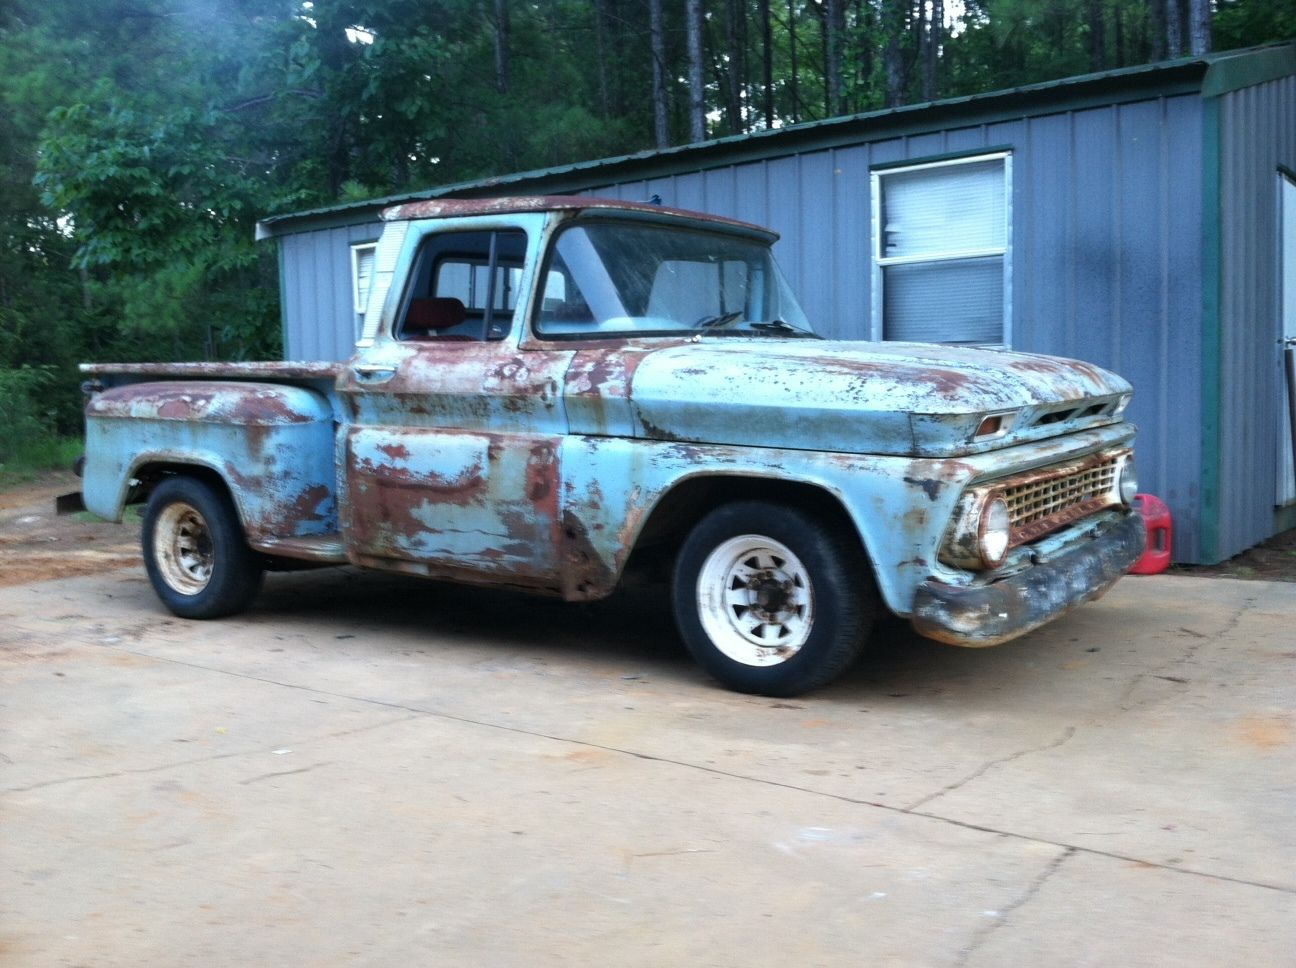 classic project trucks for sale Classic cars of houston is a full service multi-award winning auto restoration company in houston, tx that delivers restored vehicles around the world.